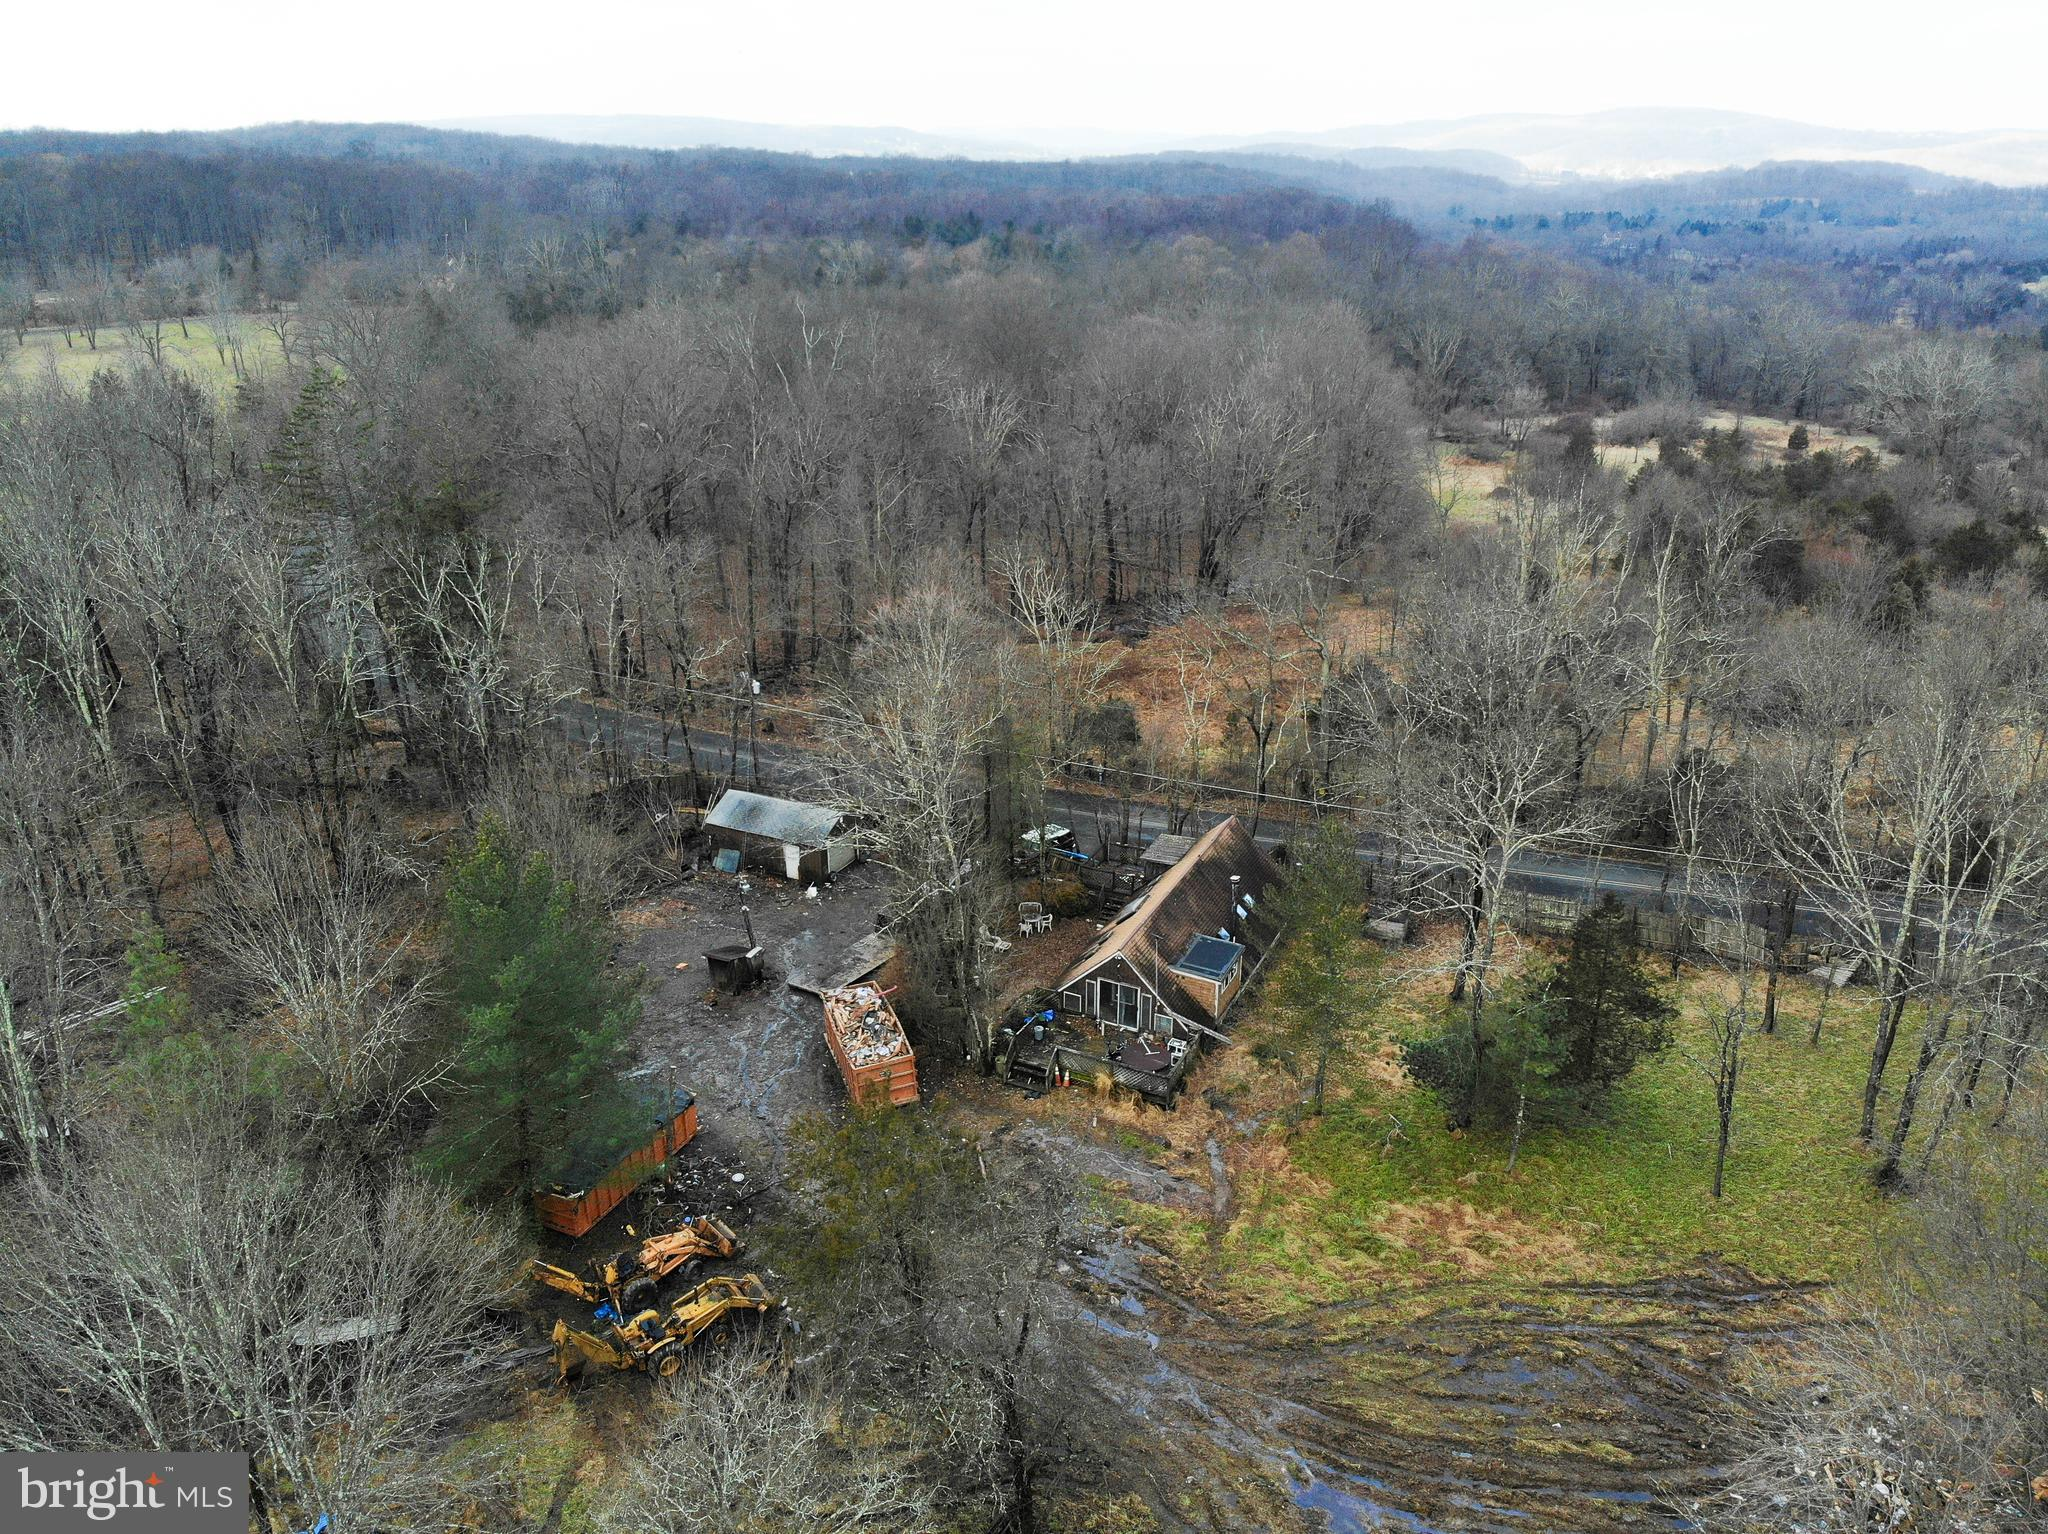 ATTENTION ALL INVESTORS AND HANDYPERSON. Home located on 2.11 acres of open land. House needs major rehab or tear it down and build a beautiful estate. Priced below market value.